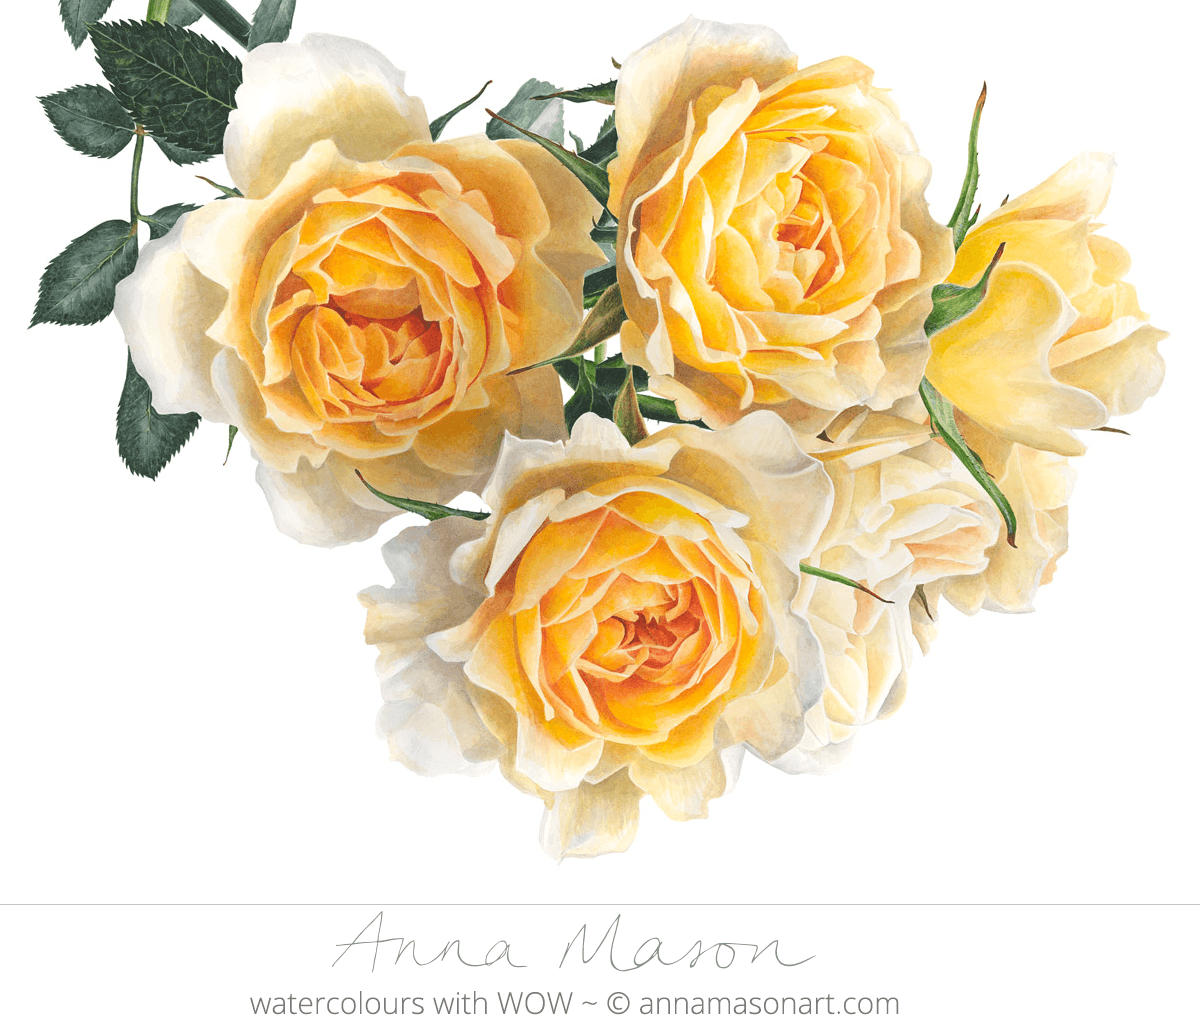 Doodlewash - Watercolor painting by Anna Mason of yellow flowers